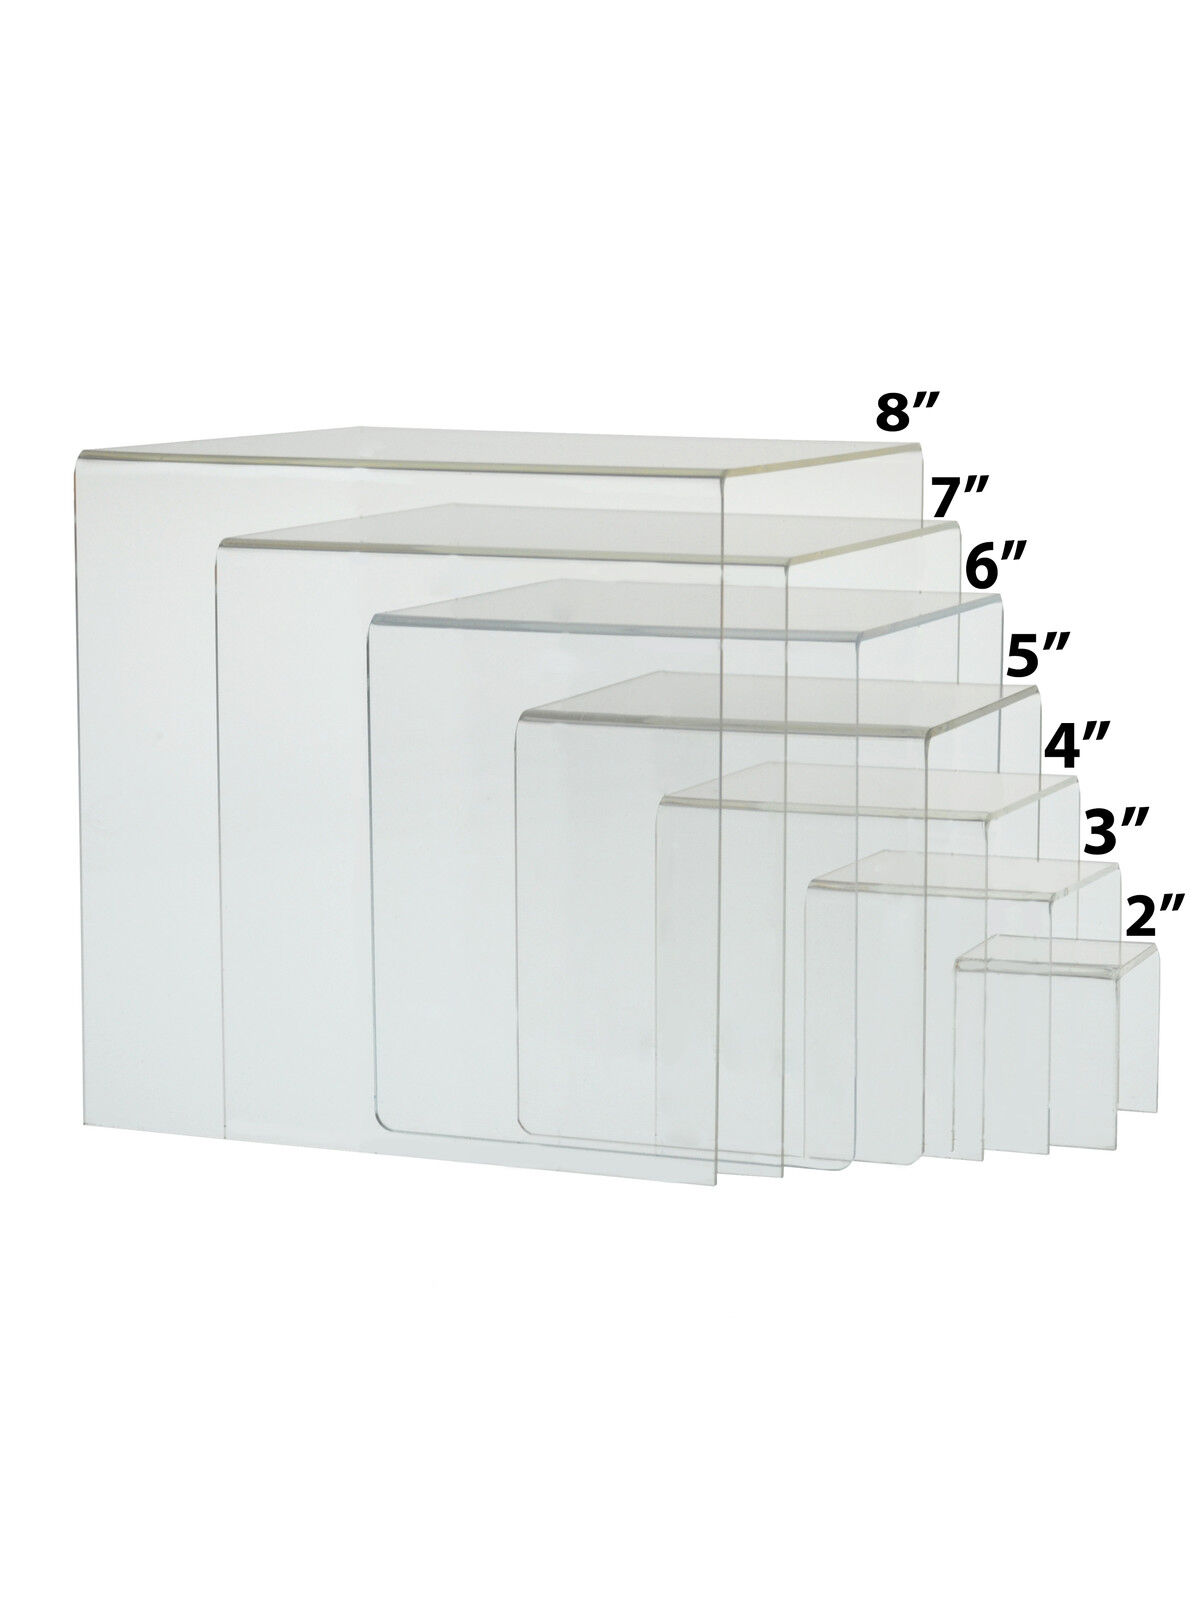 Lot of Clear 2 Cube Counter Top Riser Jewelry Makeup Display Full Set of 7